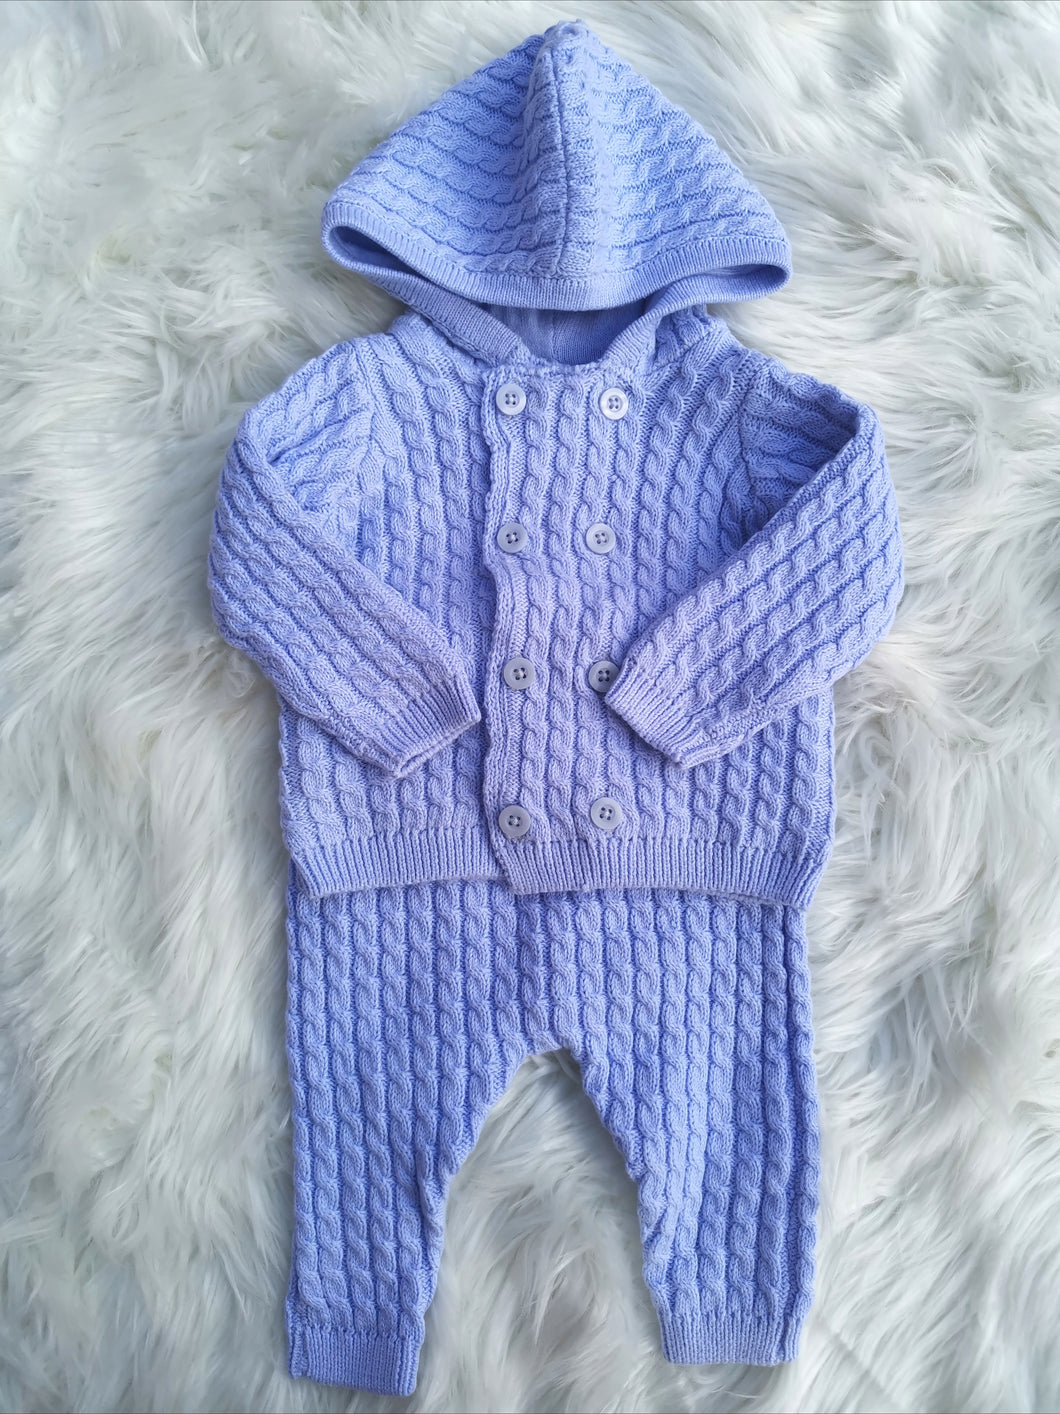 Blue Cotton Double Layer Knit Jacket And Pant Outfit